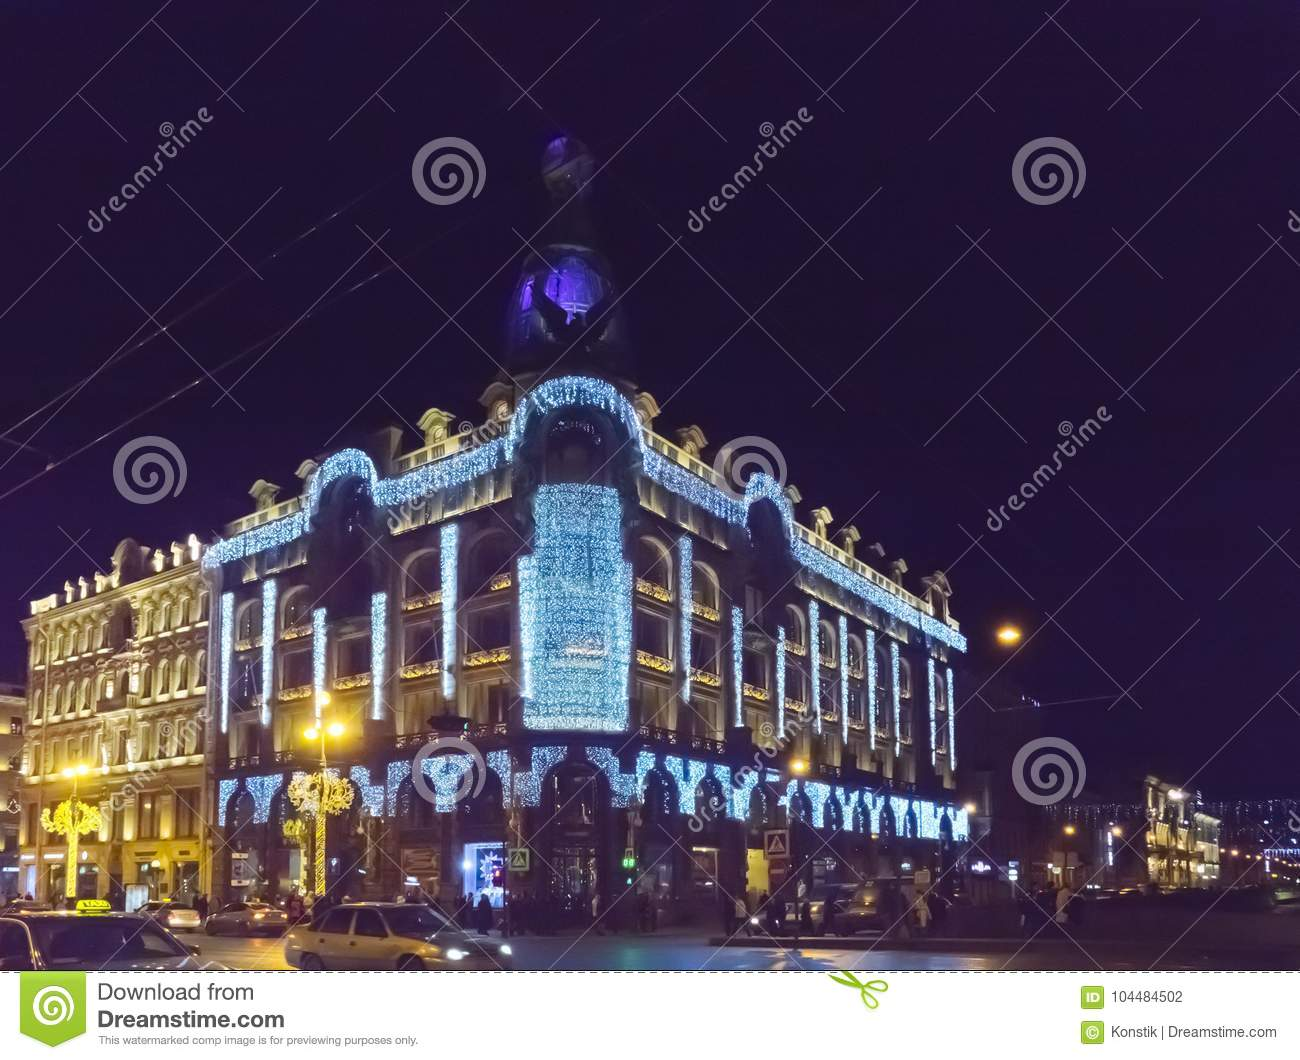 download evening city with new year and christmas decorations singer company house 1902 on nevsky